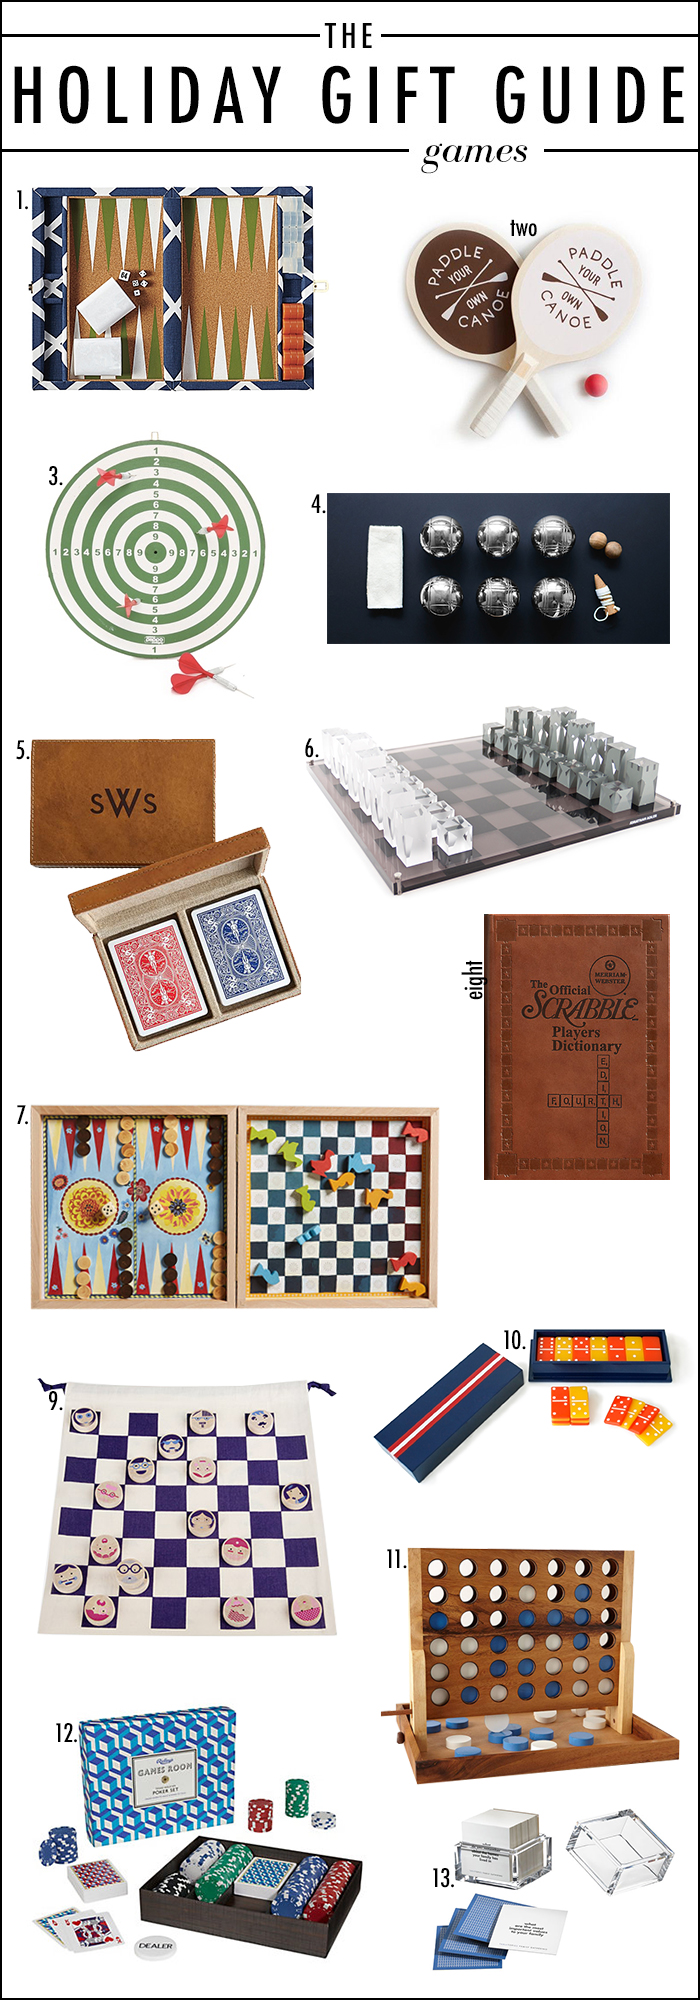 2014 HOLIDAY GIFT GUIDE BOARD GAMES, CHIC BOARD GAMES, BEAUTIFUL BOARD GAMES, STYLISH BOARD GAMES